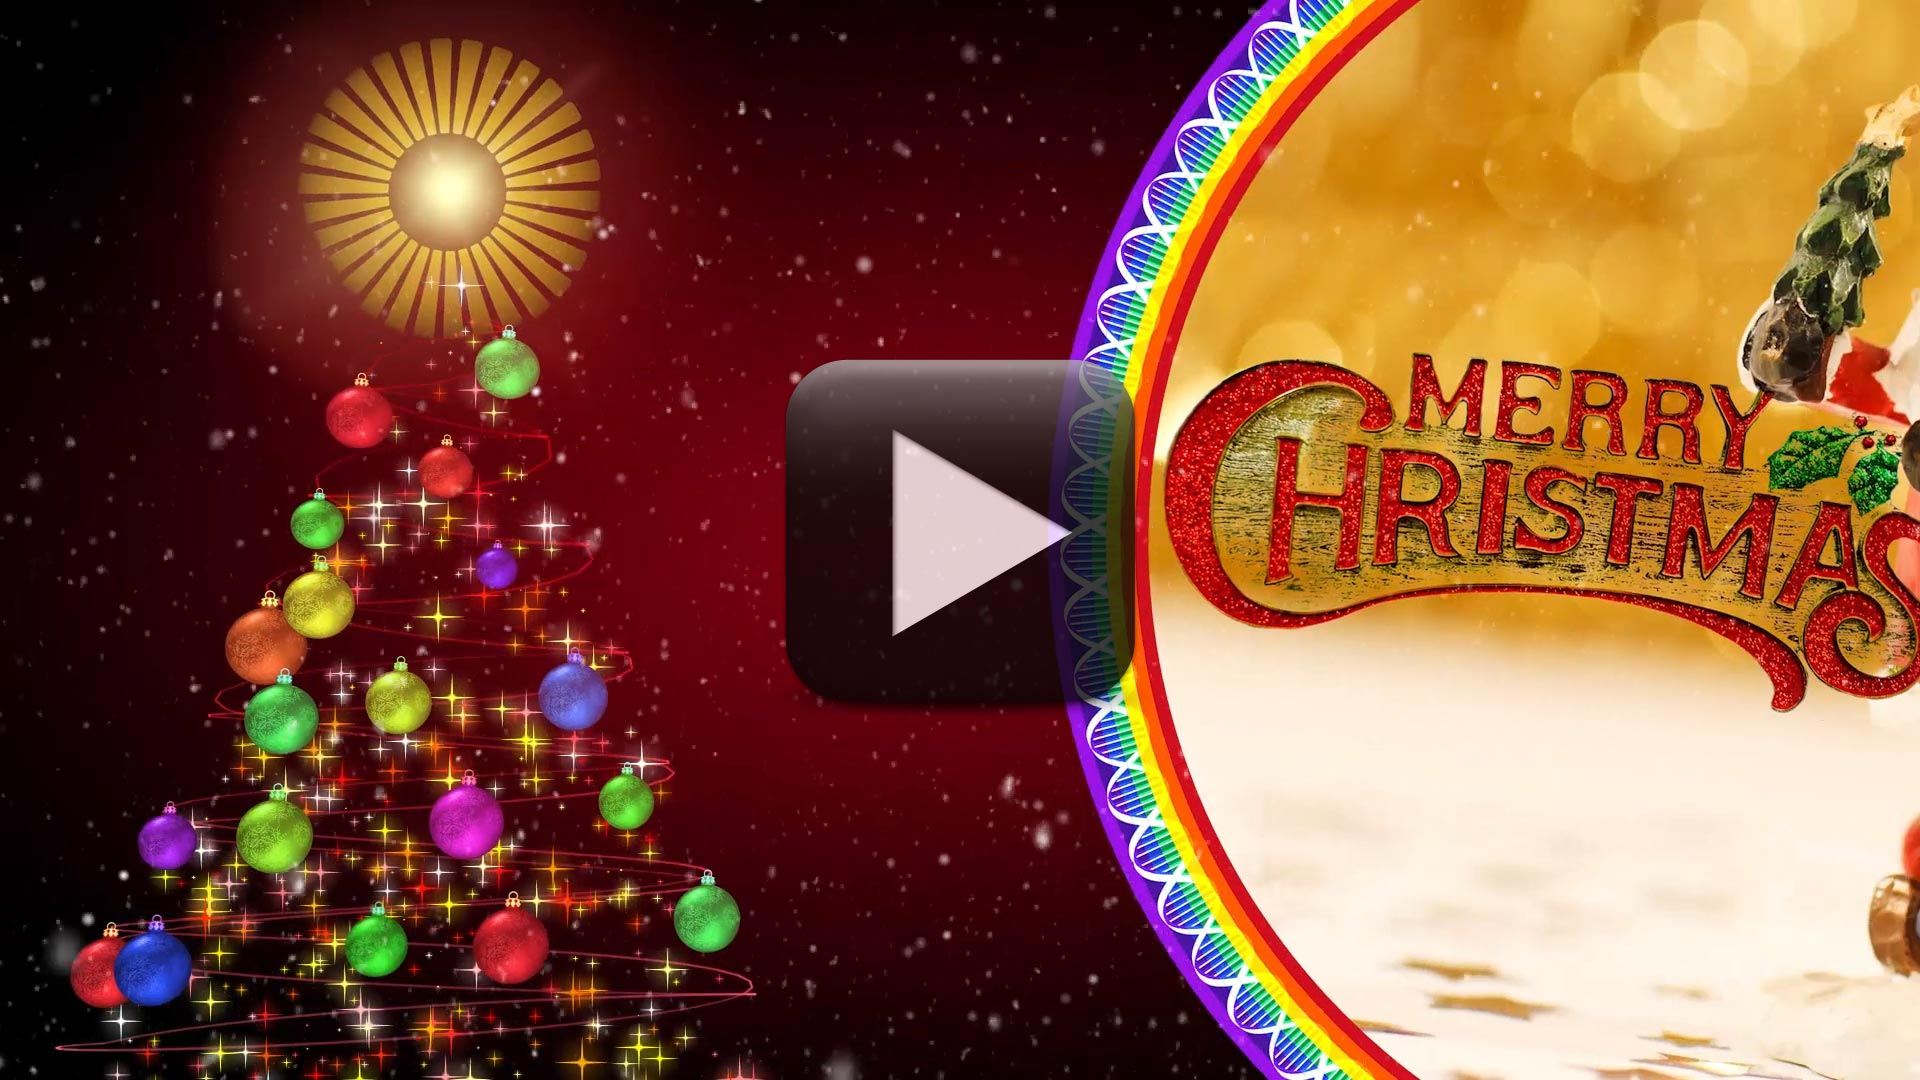 merry christmas greetings video free download all design creative - Christmas Wishes Video